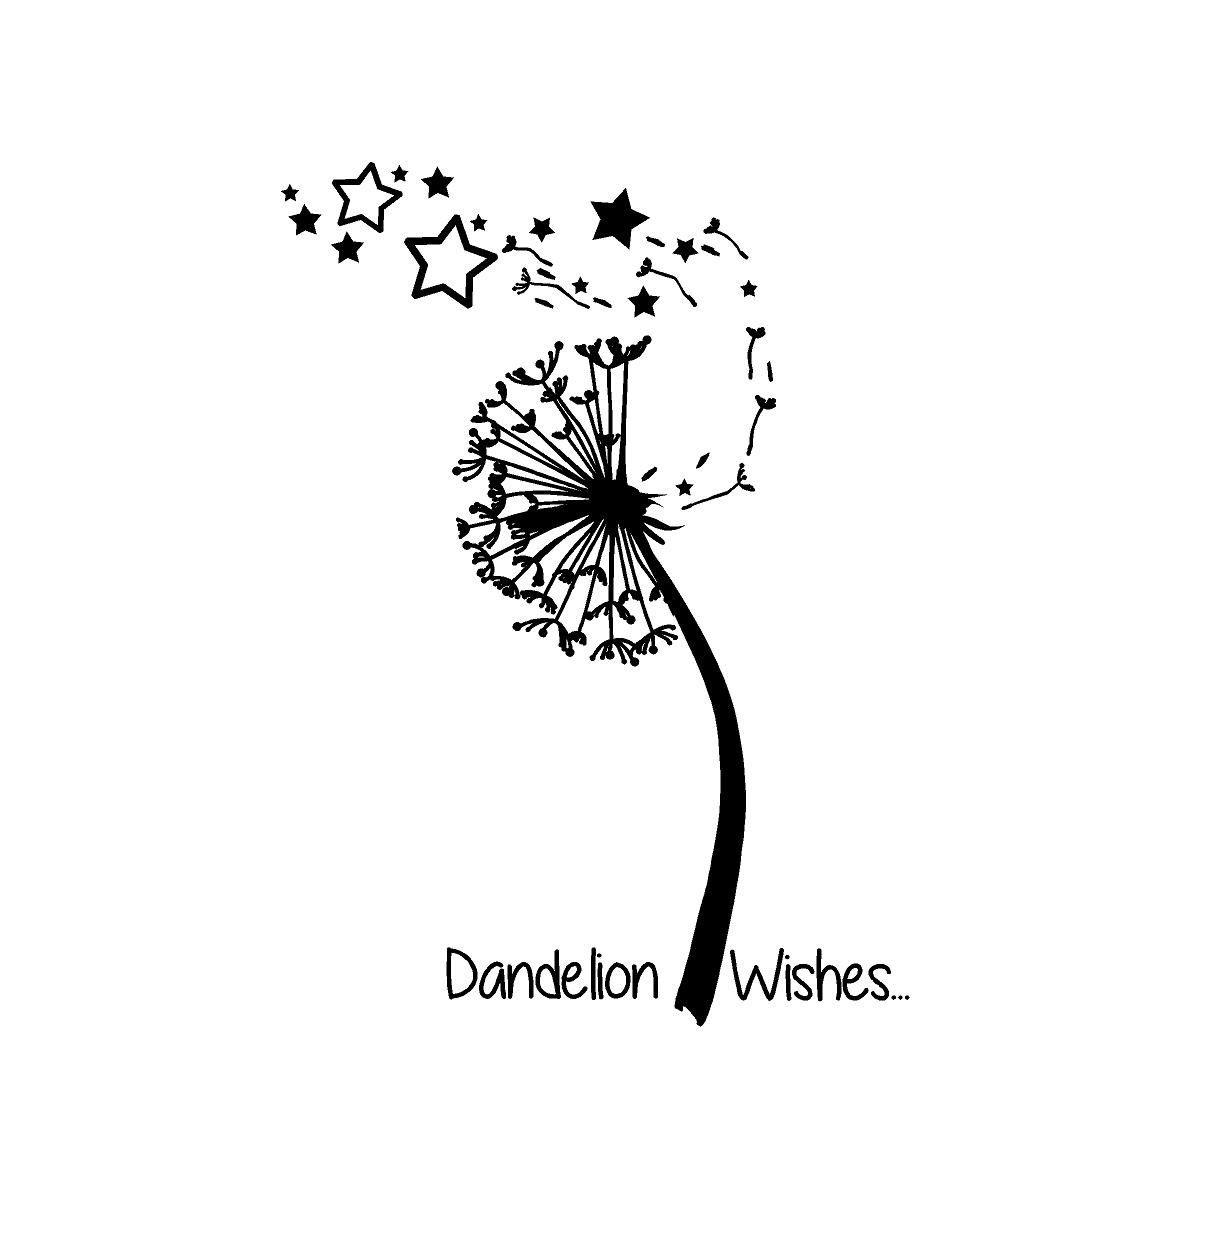 Dandelion wish car decals vinyl decals silhouette cameo projects custom vinyl